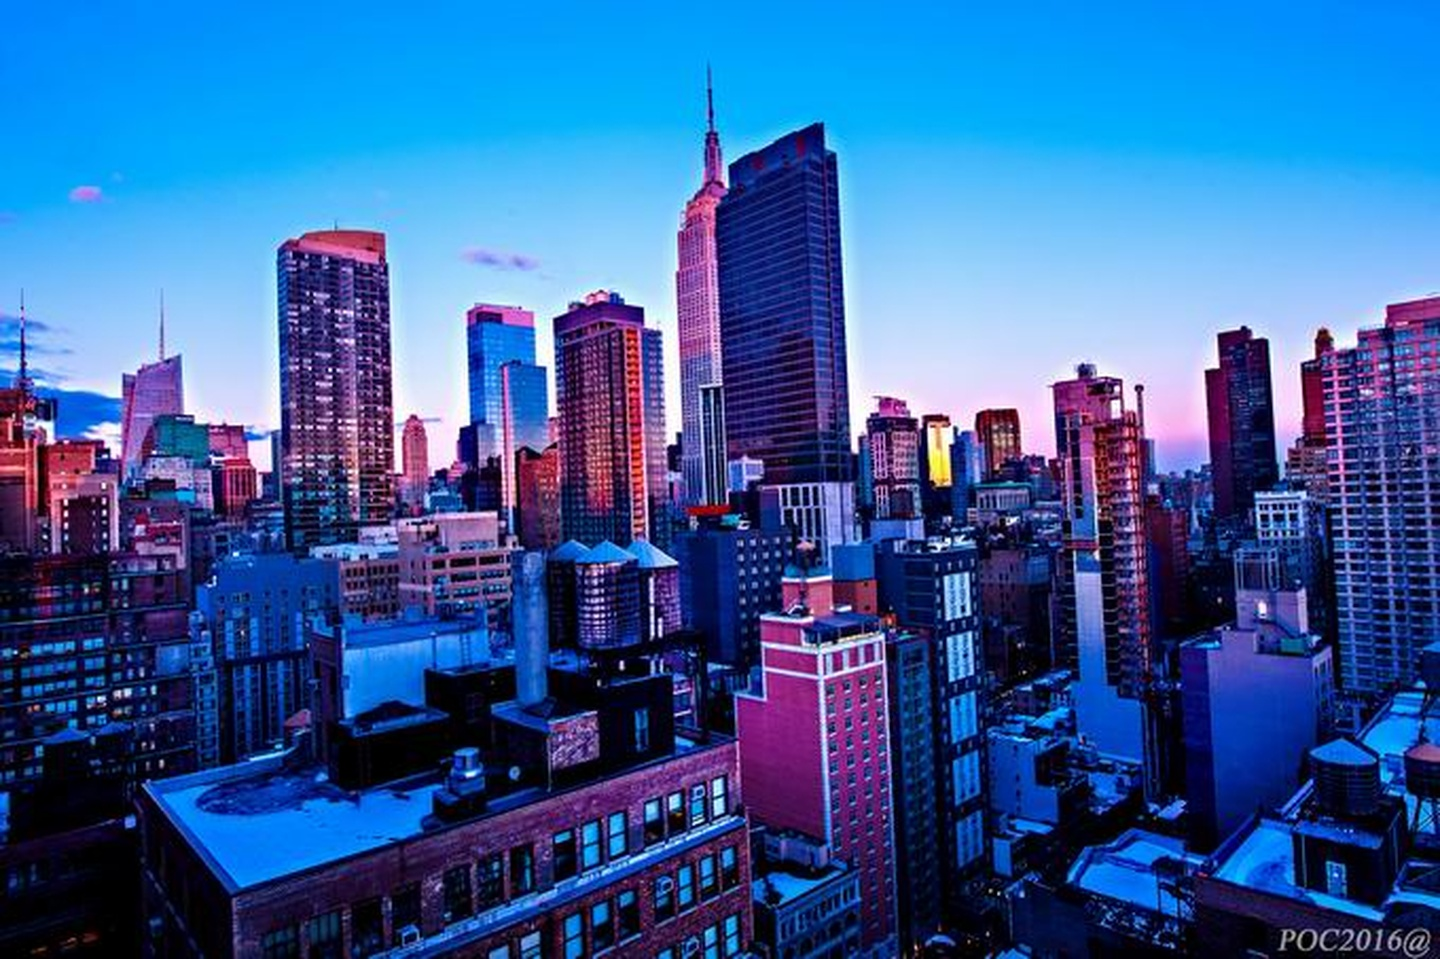 NYC corporate event venues Rooftop Colliton Rooftop image 1